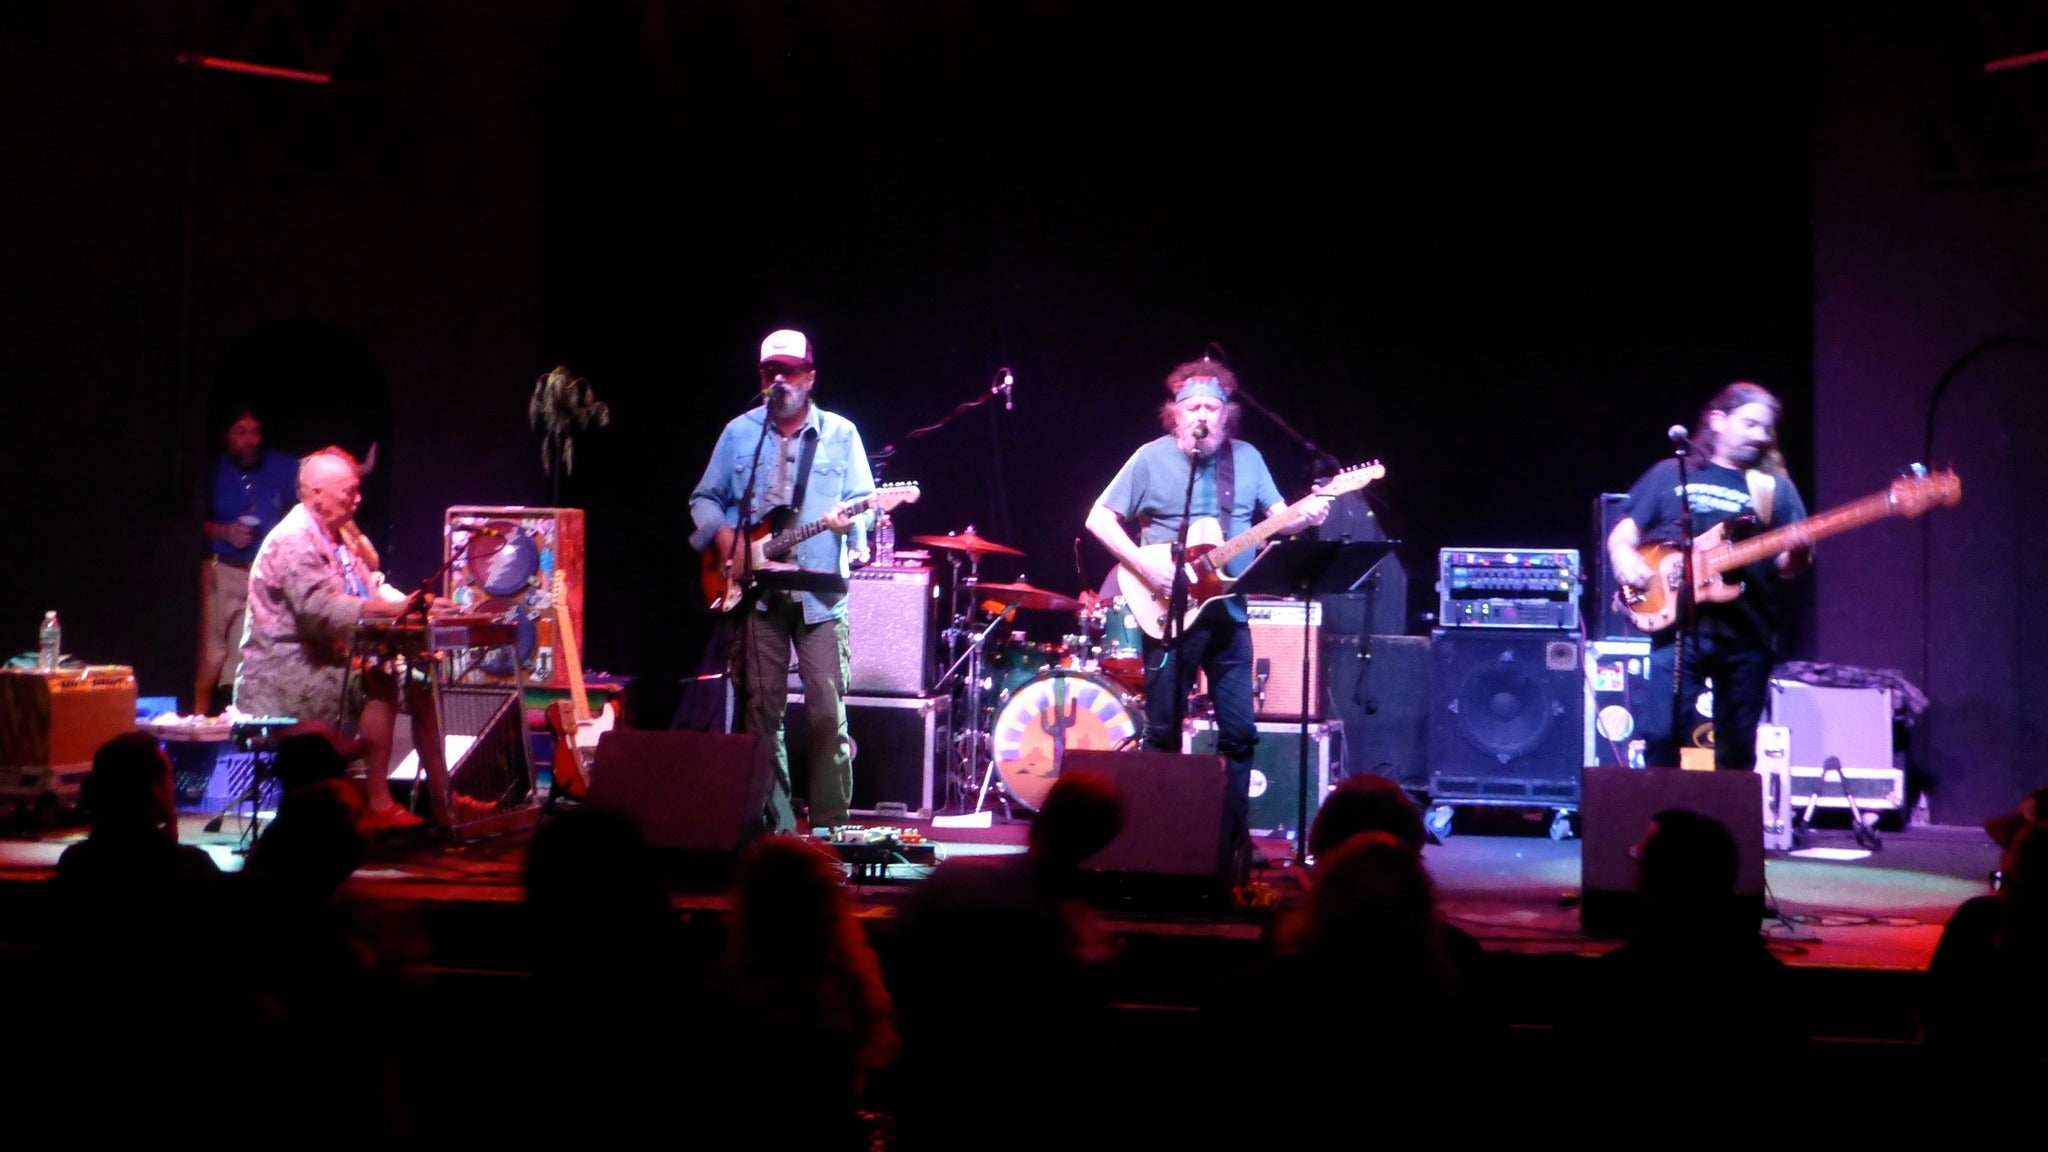 New Riders of the Purple Sage at F. M. Kirby Center